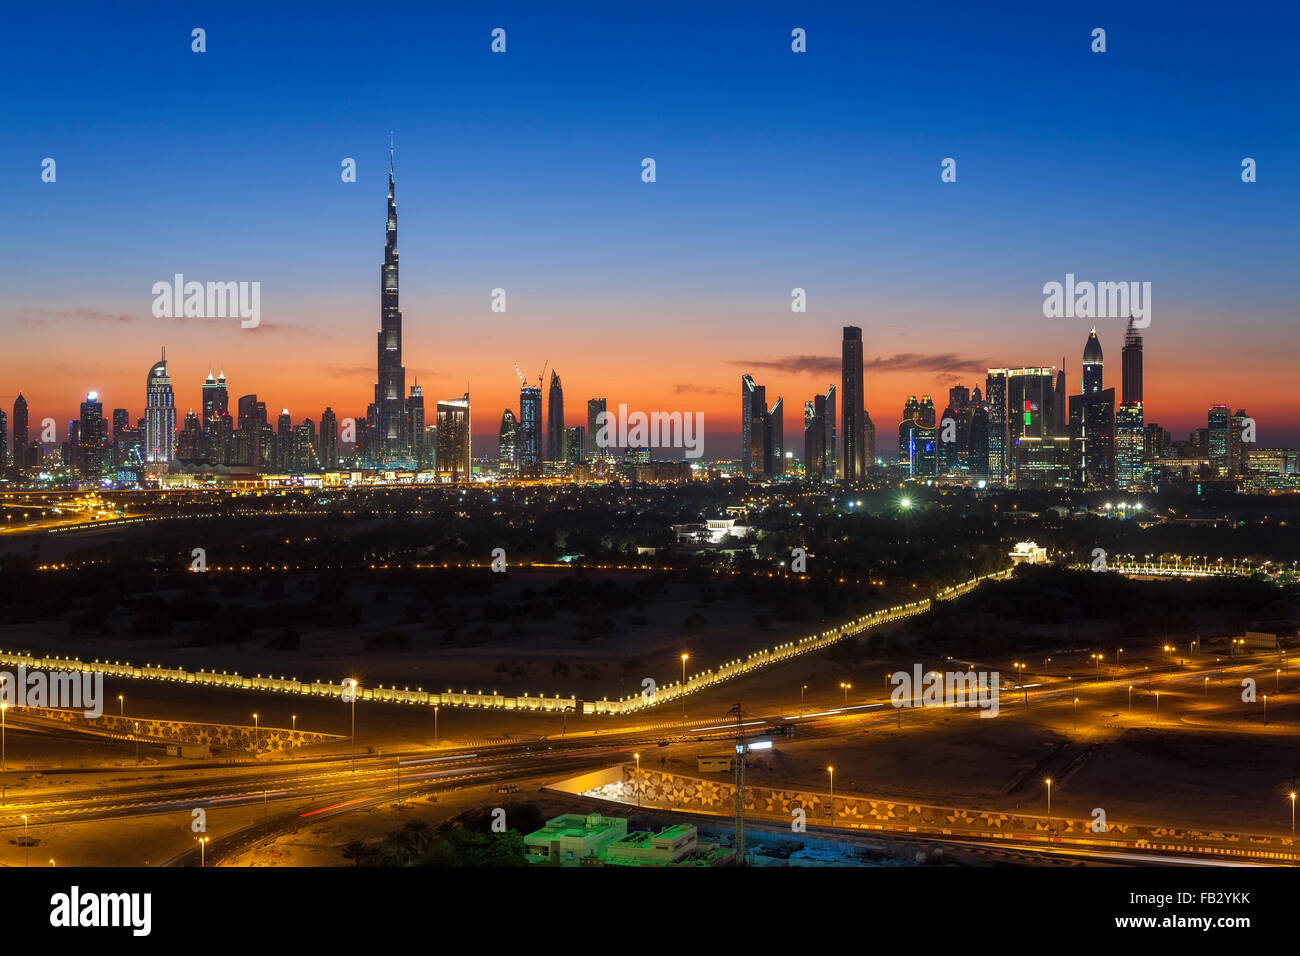 United Arab Emirates, Dubai, elevated view of the new Dubai skyline, the Burj Khalifa, modern architecture and skyscrappers - Stock Image